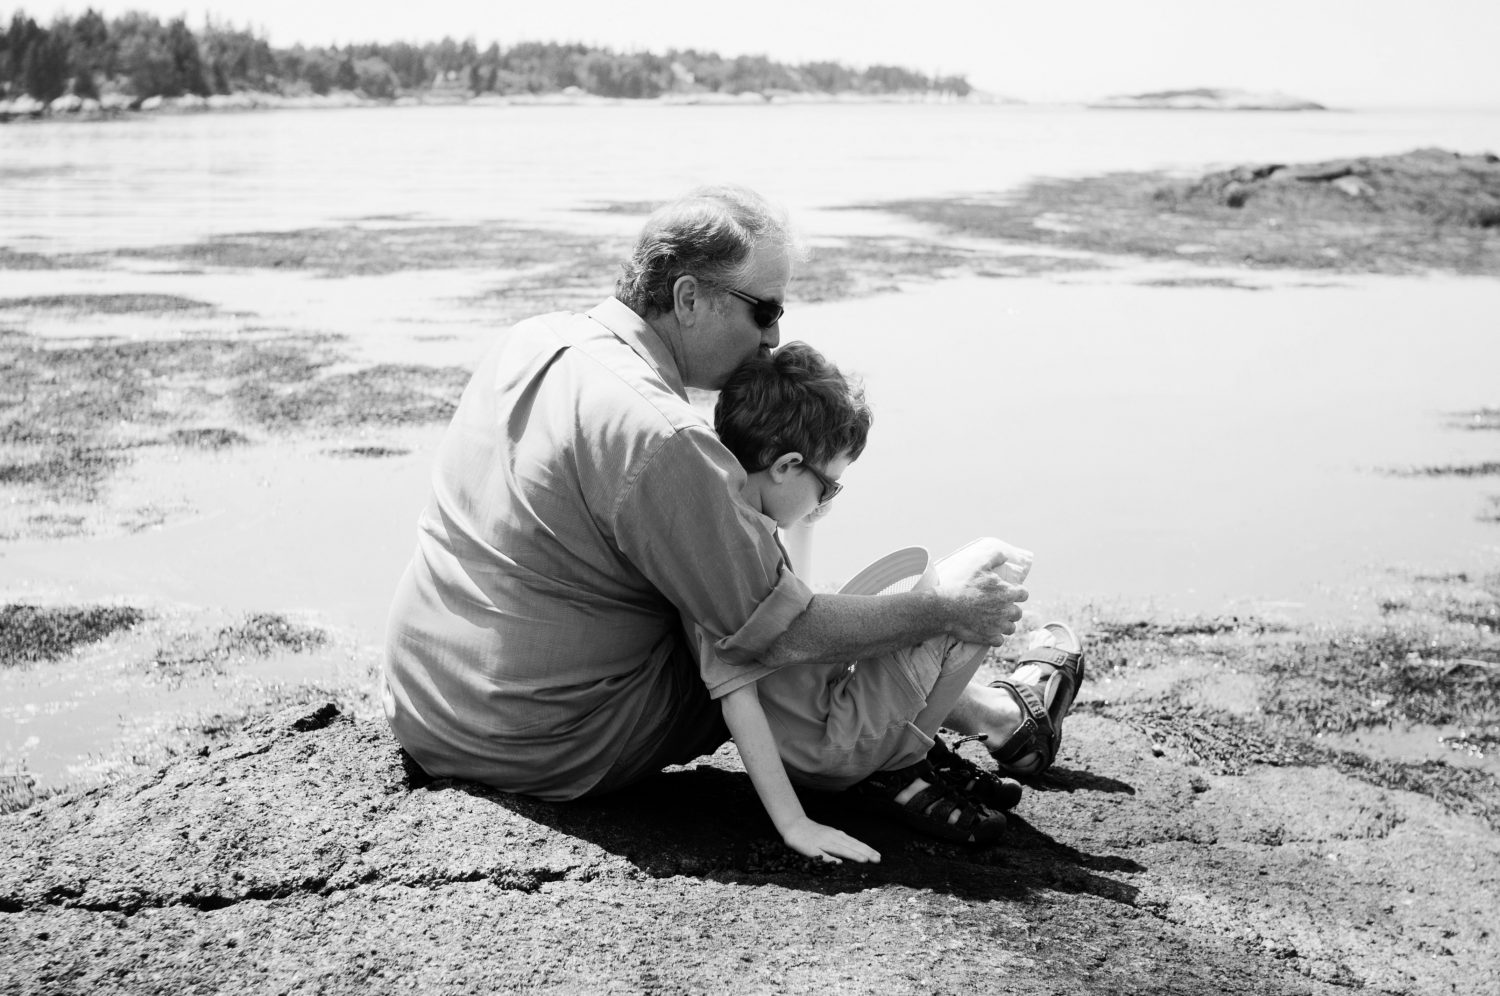 father and son sitting together on the rocky shoreline